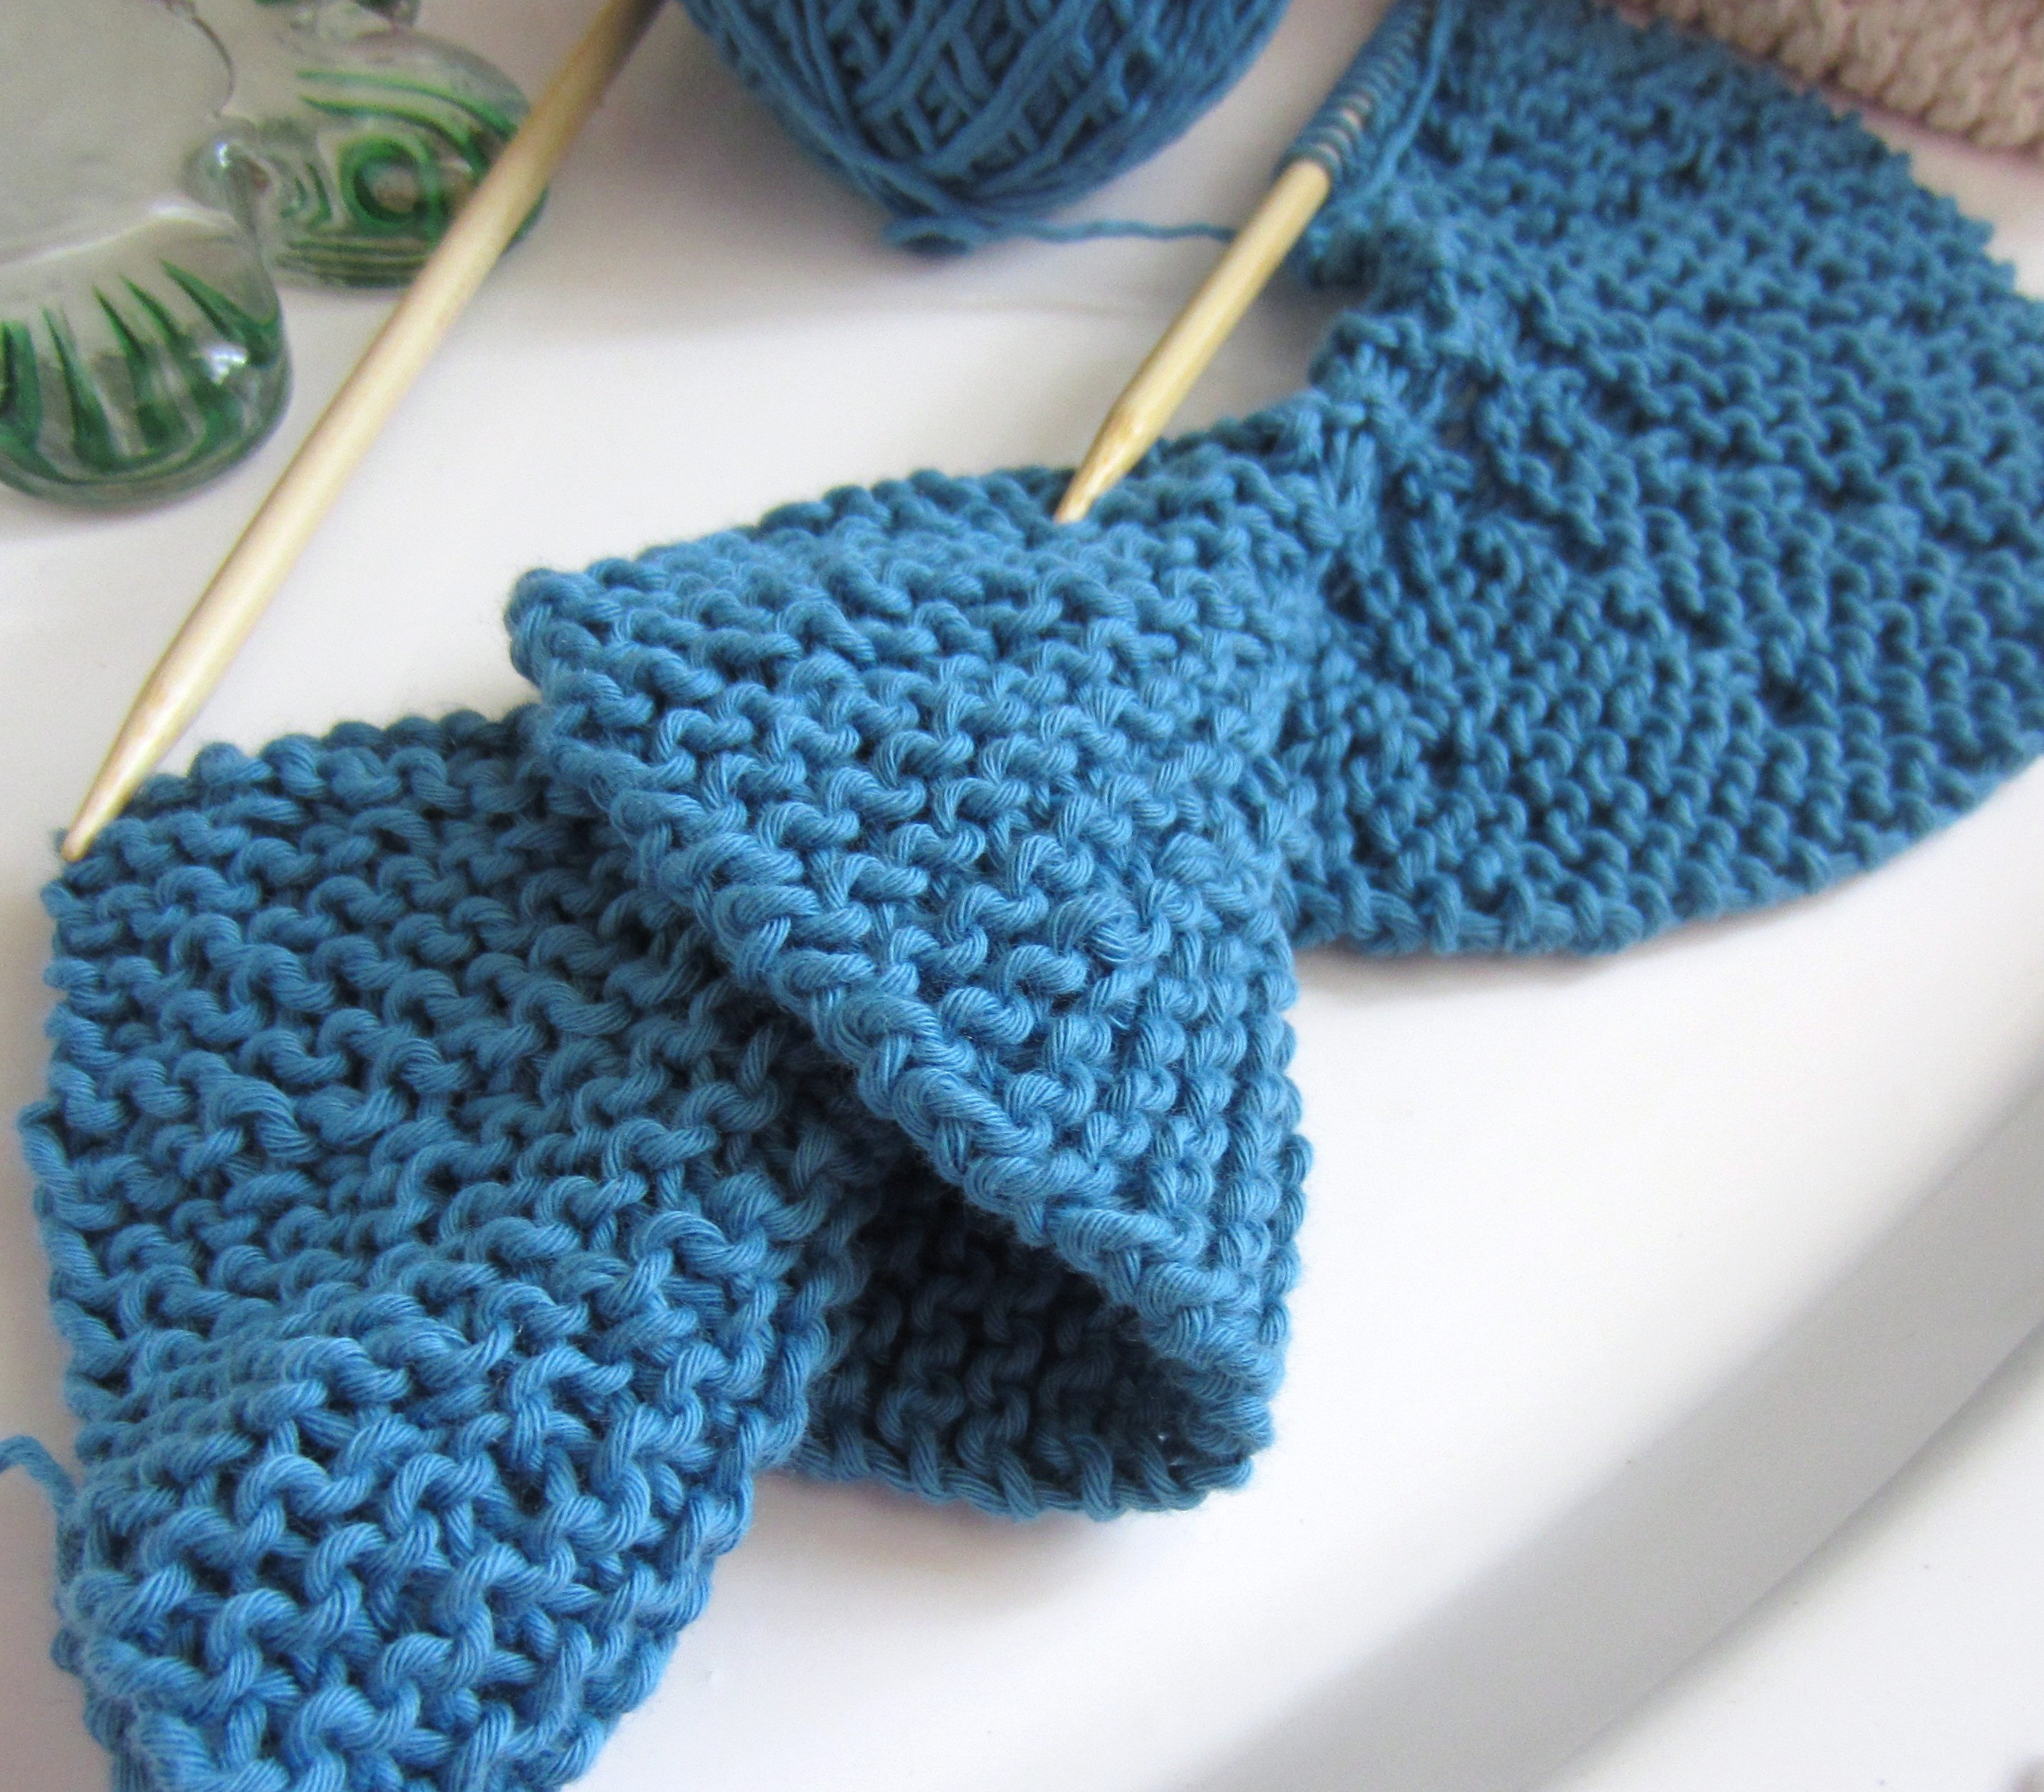 Knitting Crocheting : Trying my hand at short row knitting spiral scarf